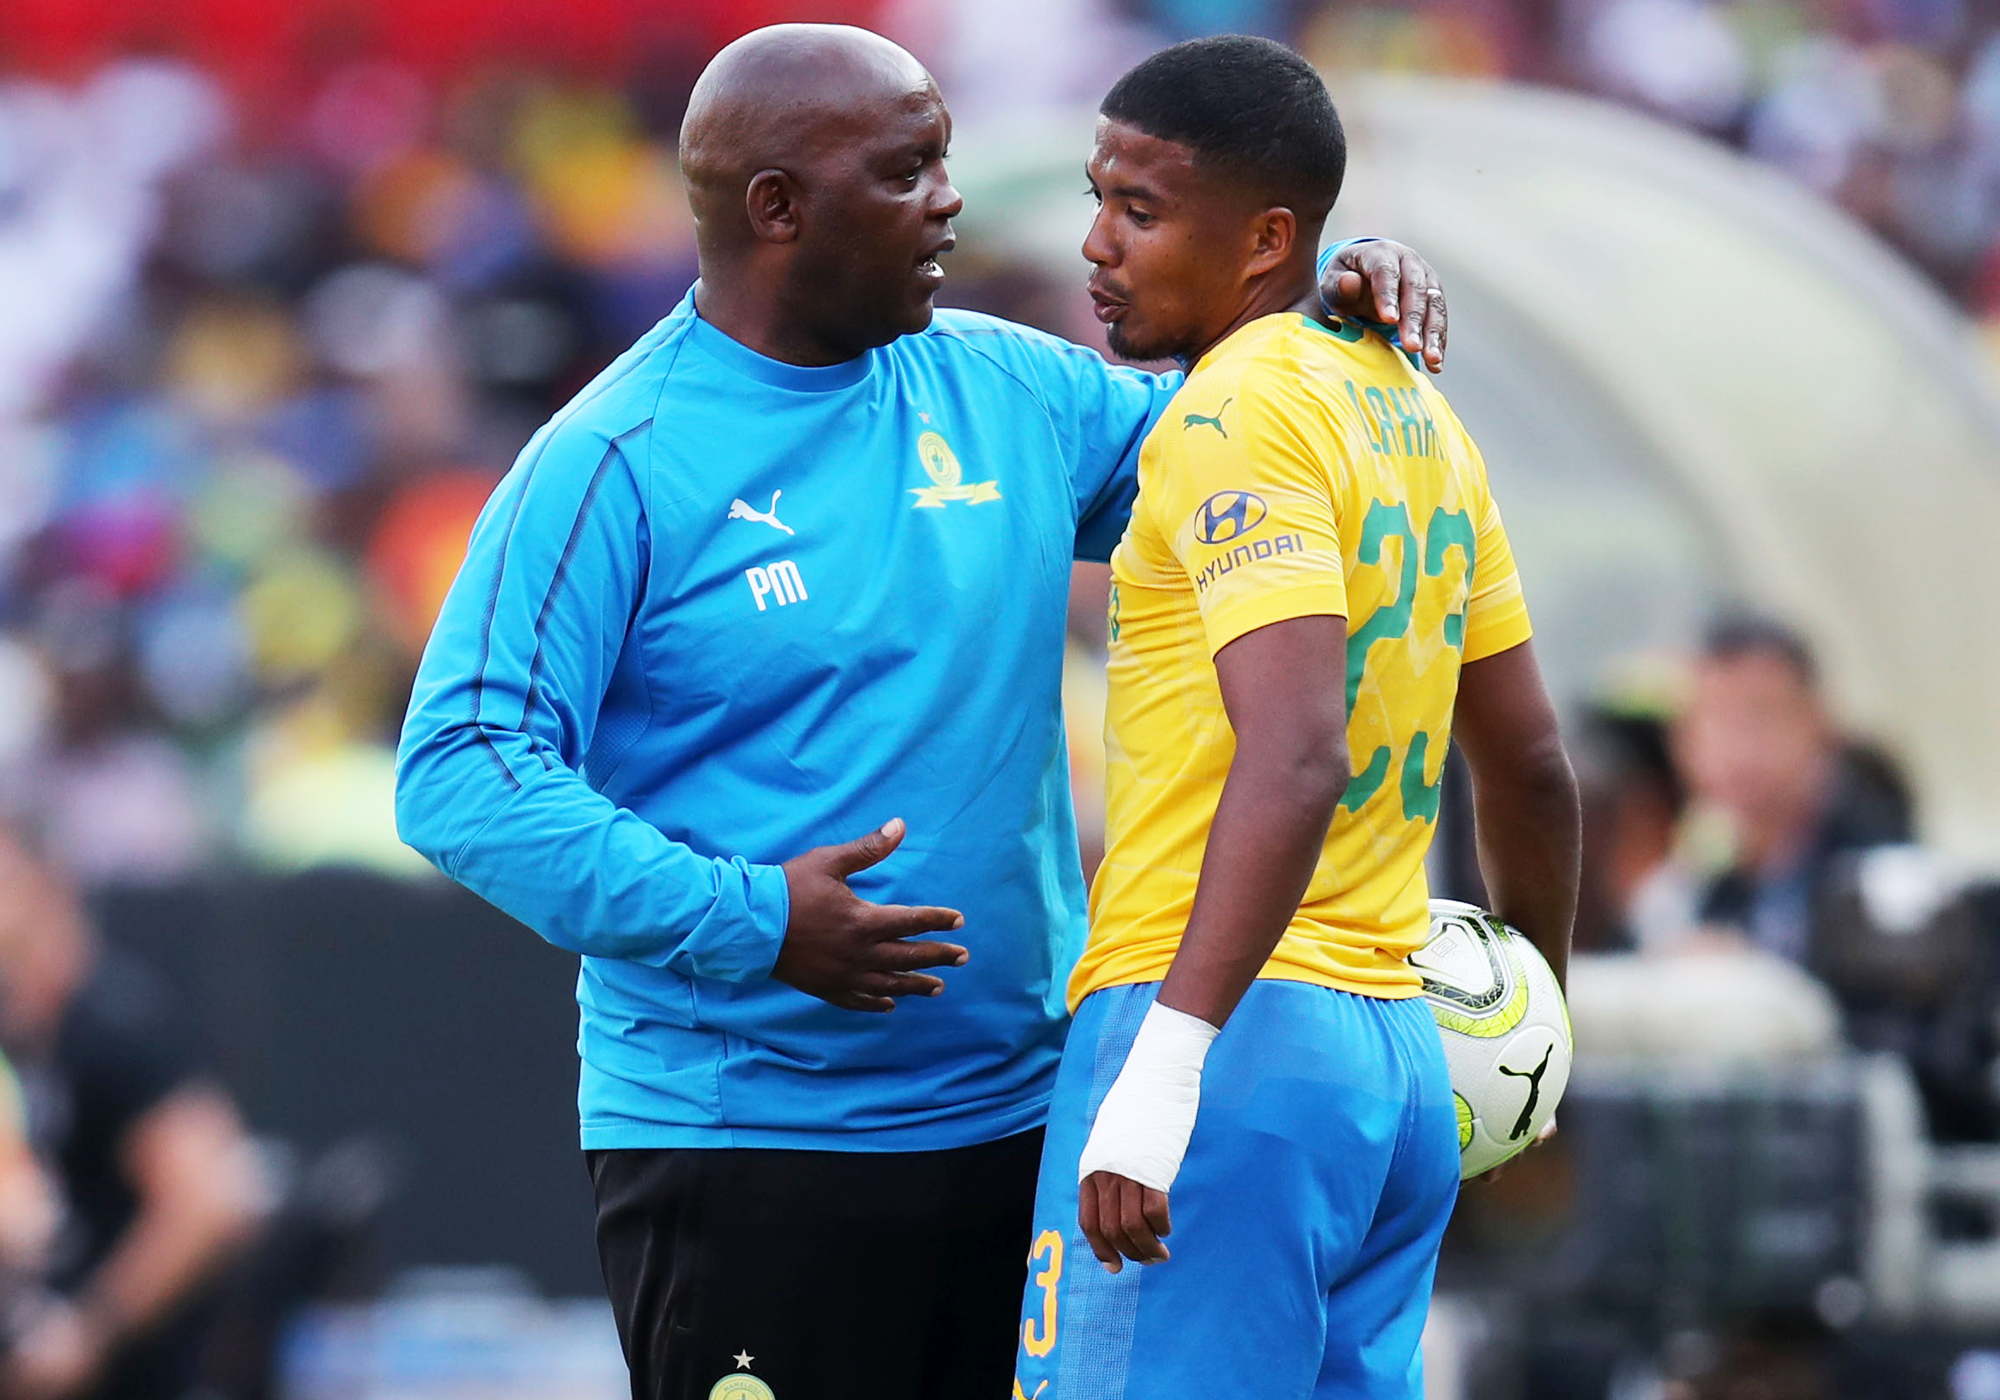 Mosimane Disappointed With Draw, But Happy With Performance